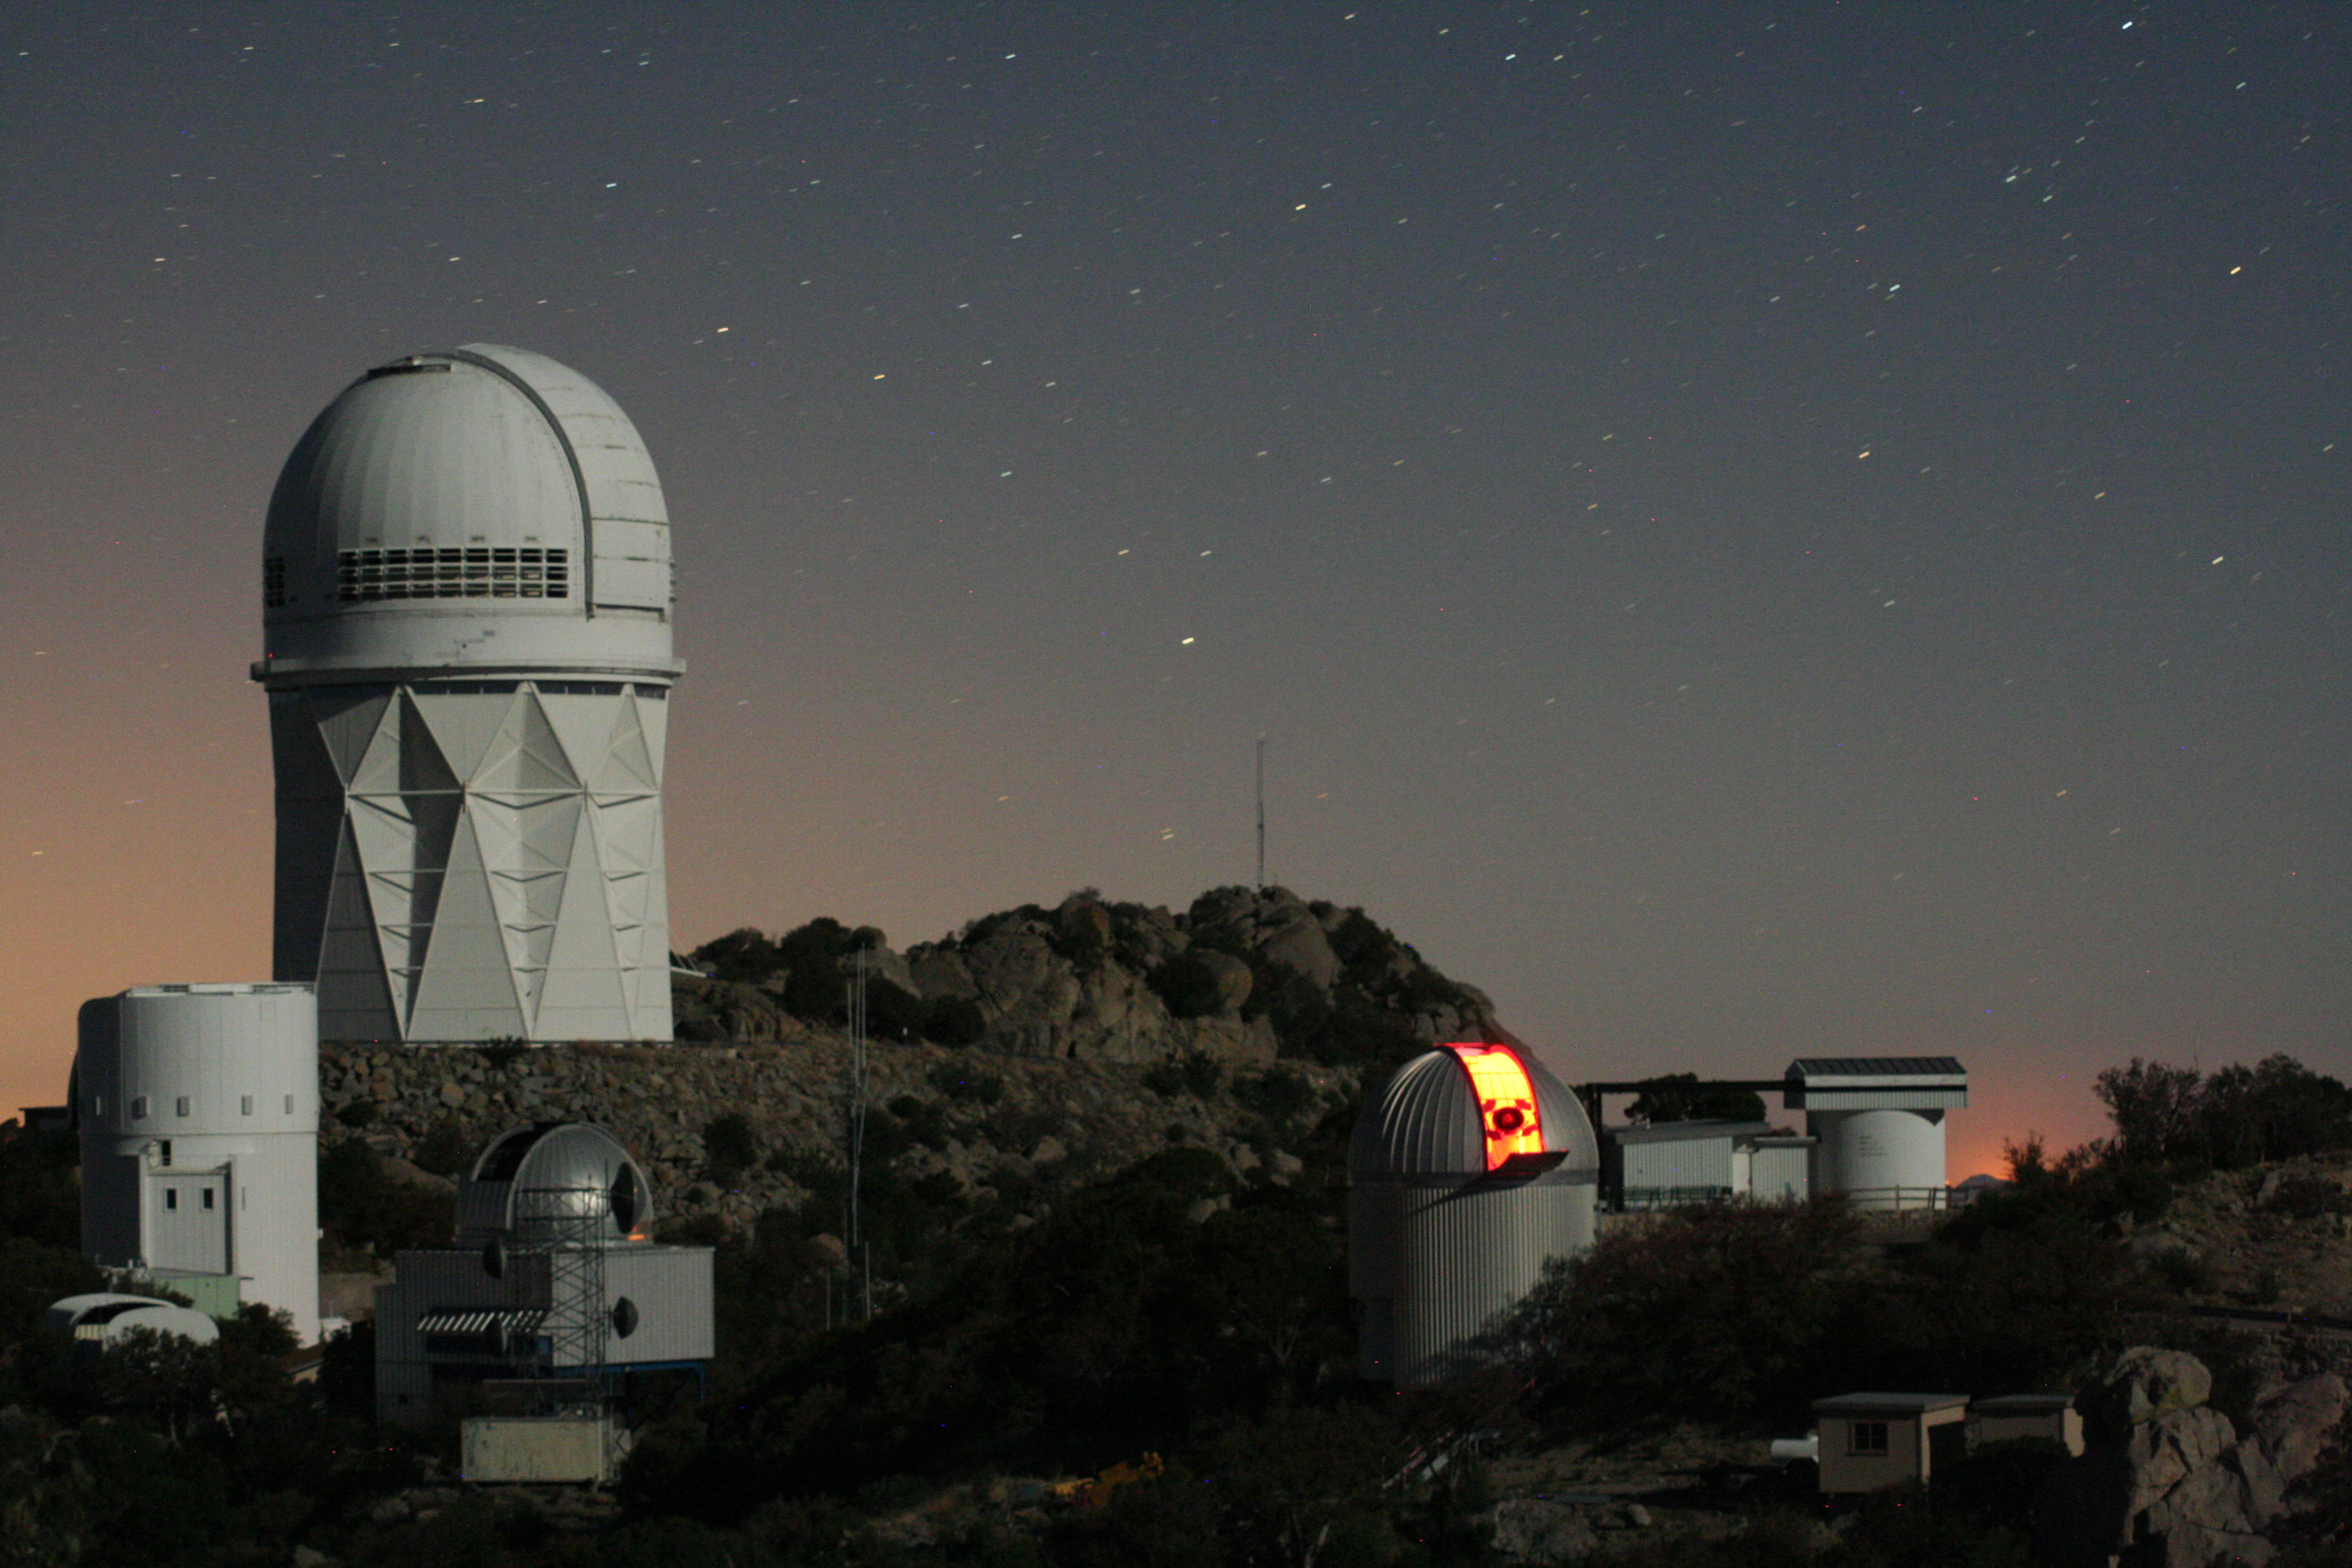 astronomy tucson az - photo #32